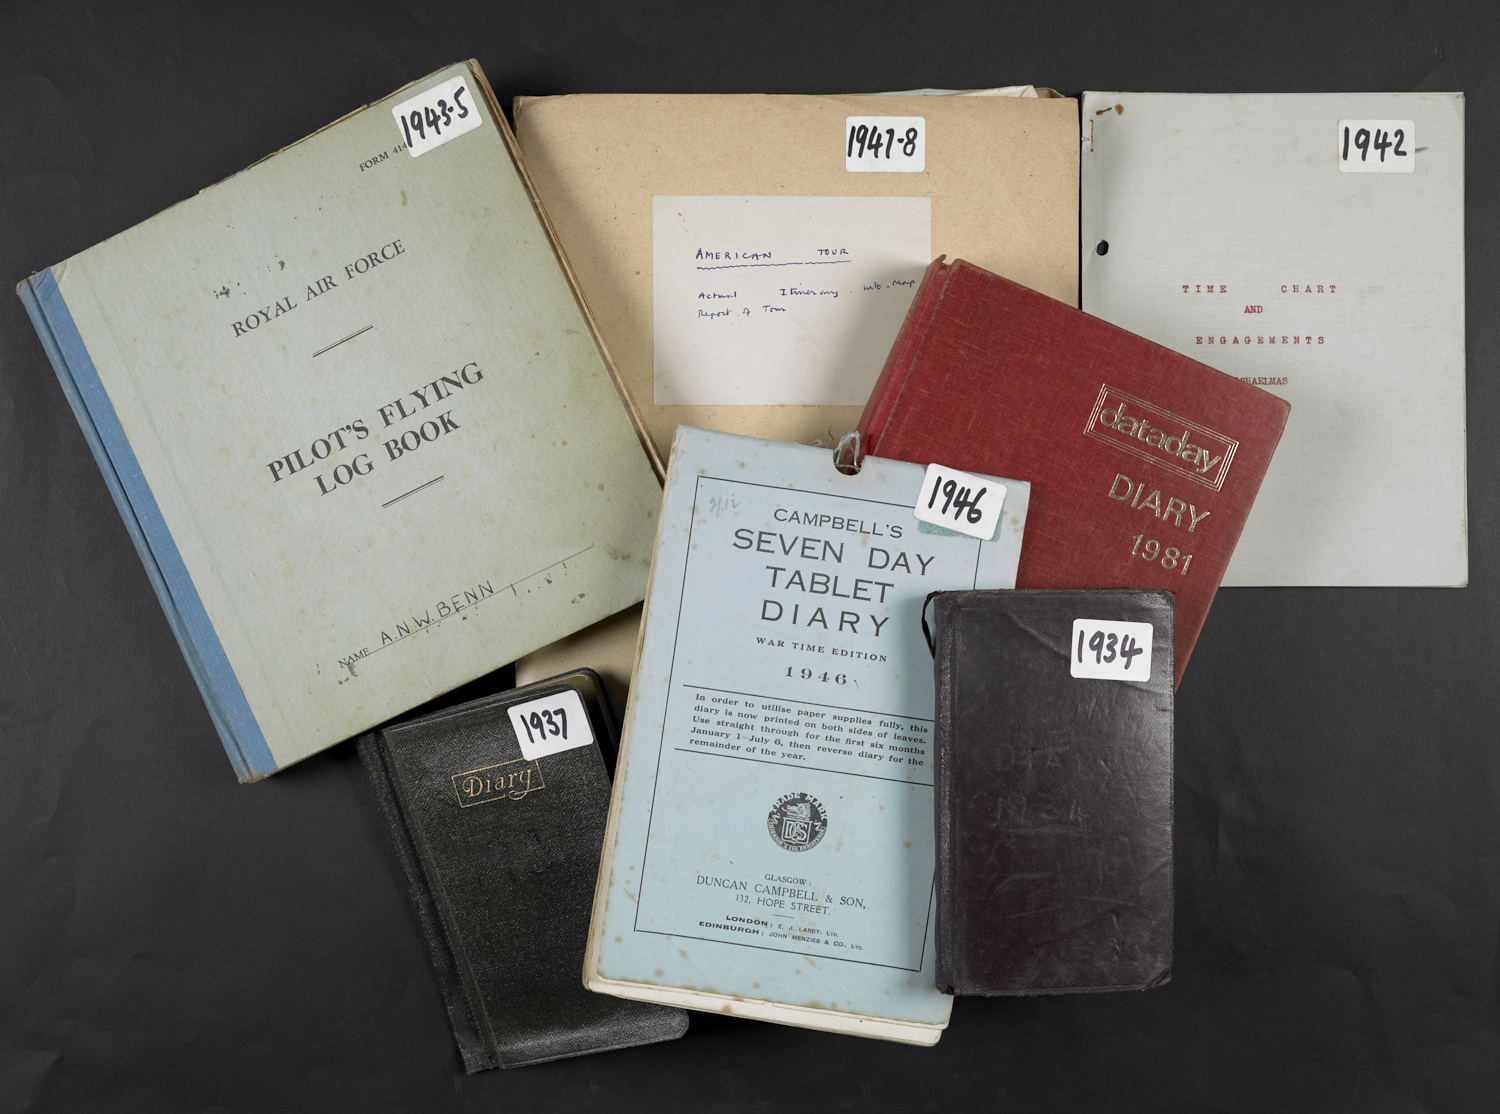 A selection of diaries from the Tony Benn Archive. Photo credit: British Library.